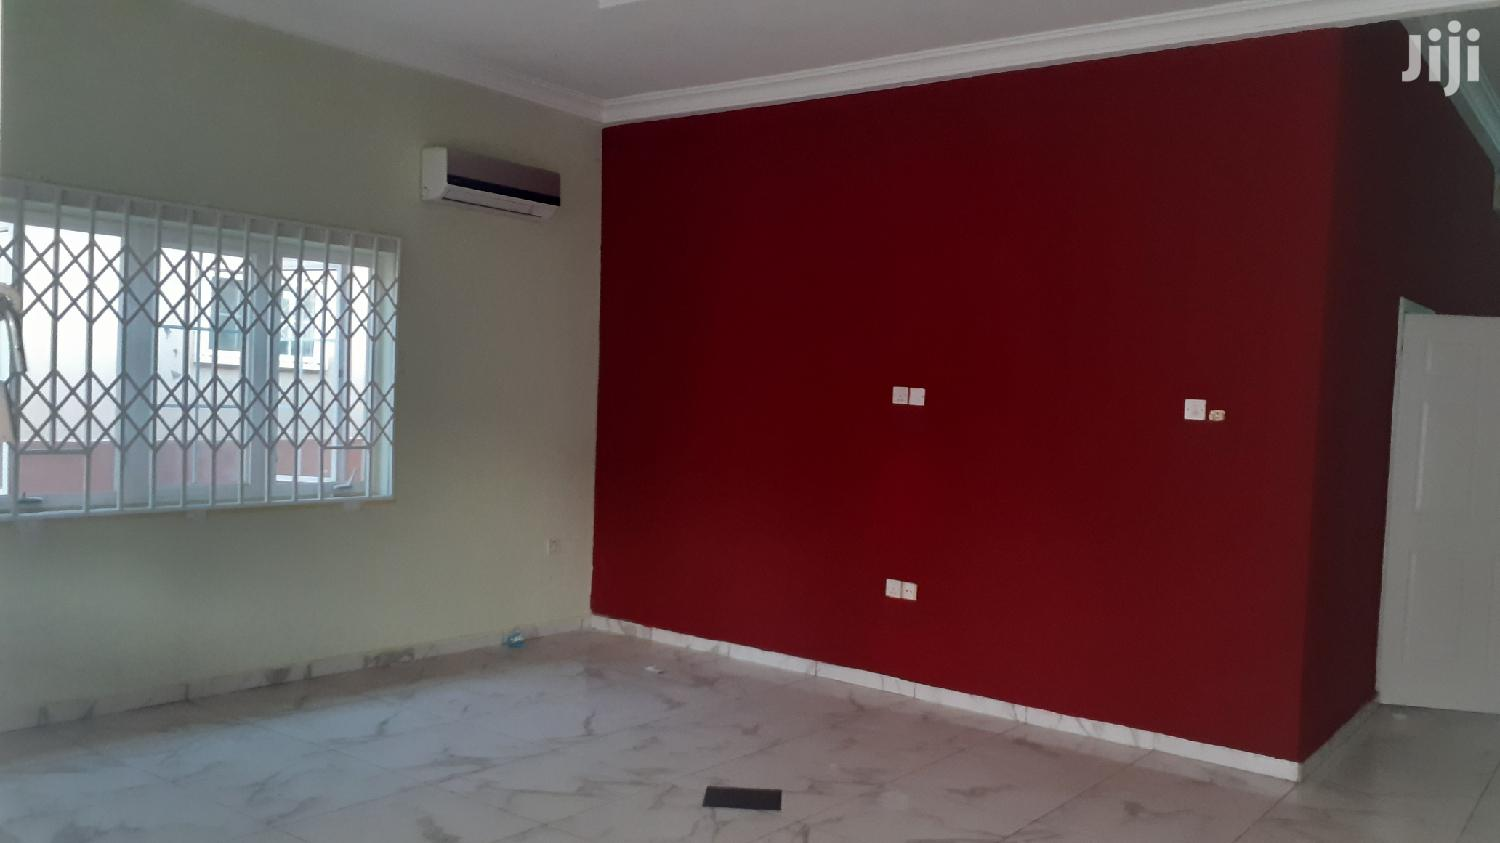 Executive 3 Bedroom House for Rent at Spintex, Manet Court | Houses & Apartments For Rent for sale in Accra Metropolitan, Greater Accra, Ghana